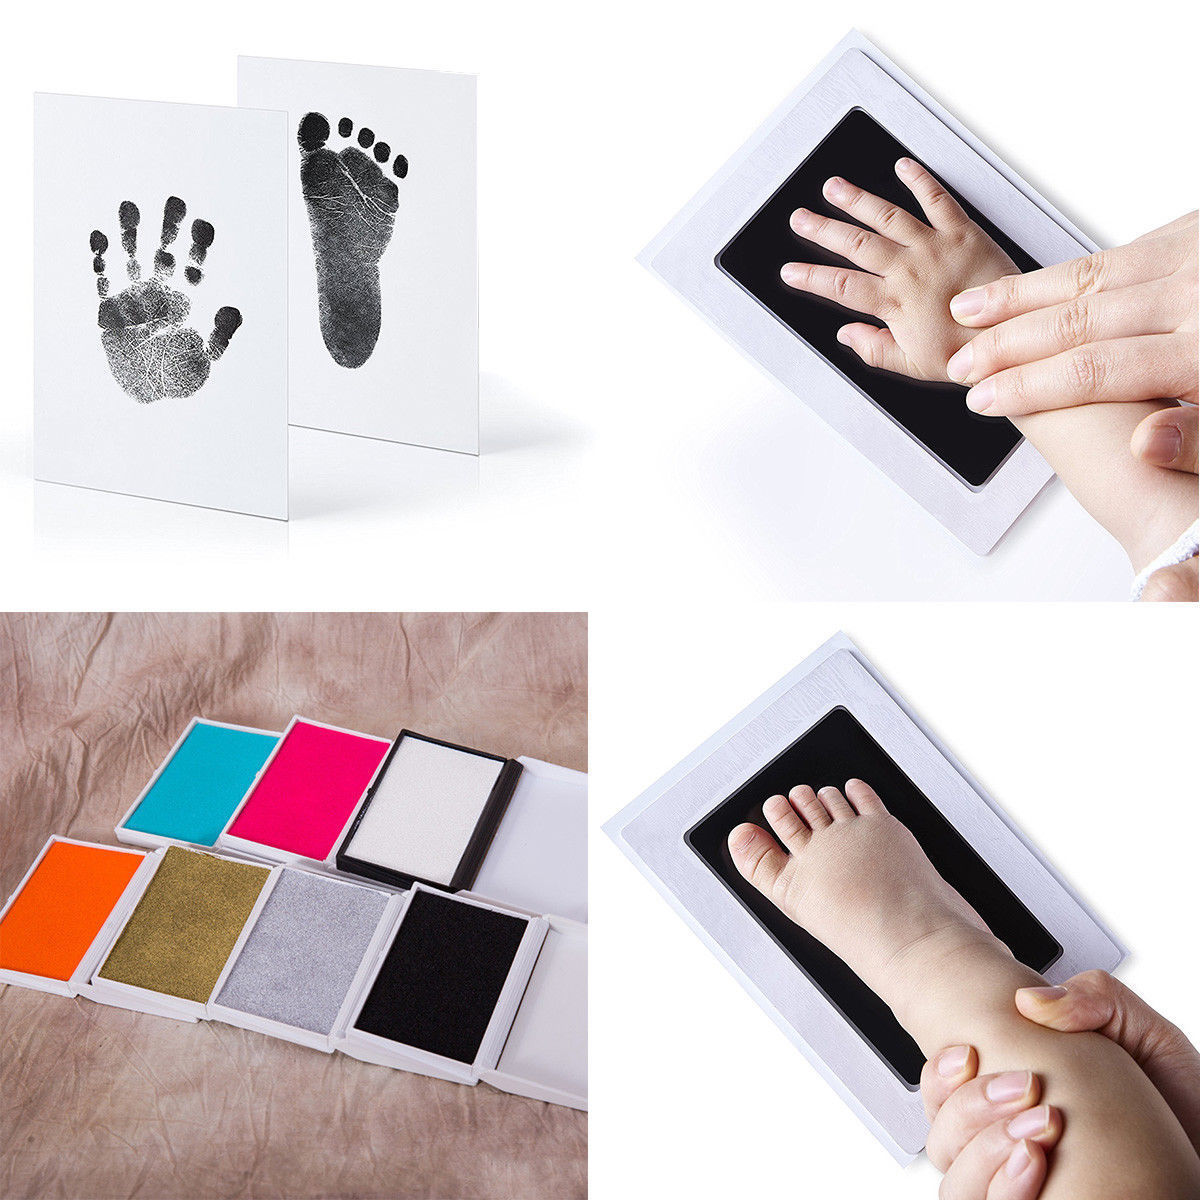 Baby Safe Print Ink Pad Hand Footprint Makers Footprint Handprint Kit Keepsake Maker Memories DIY